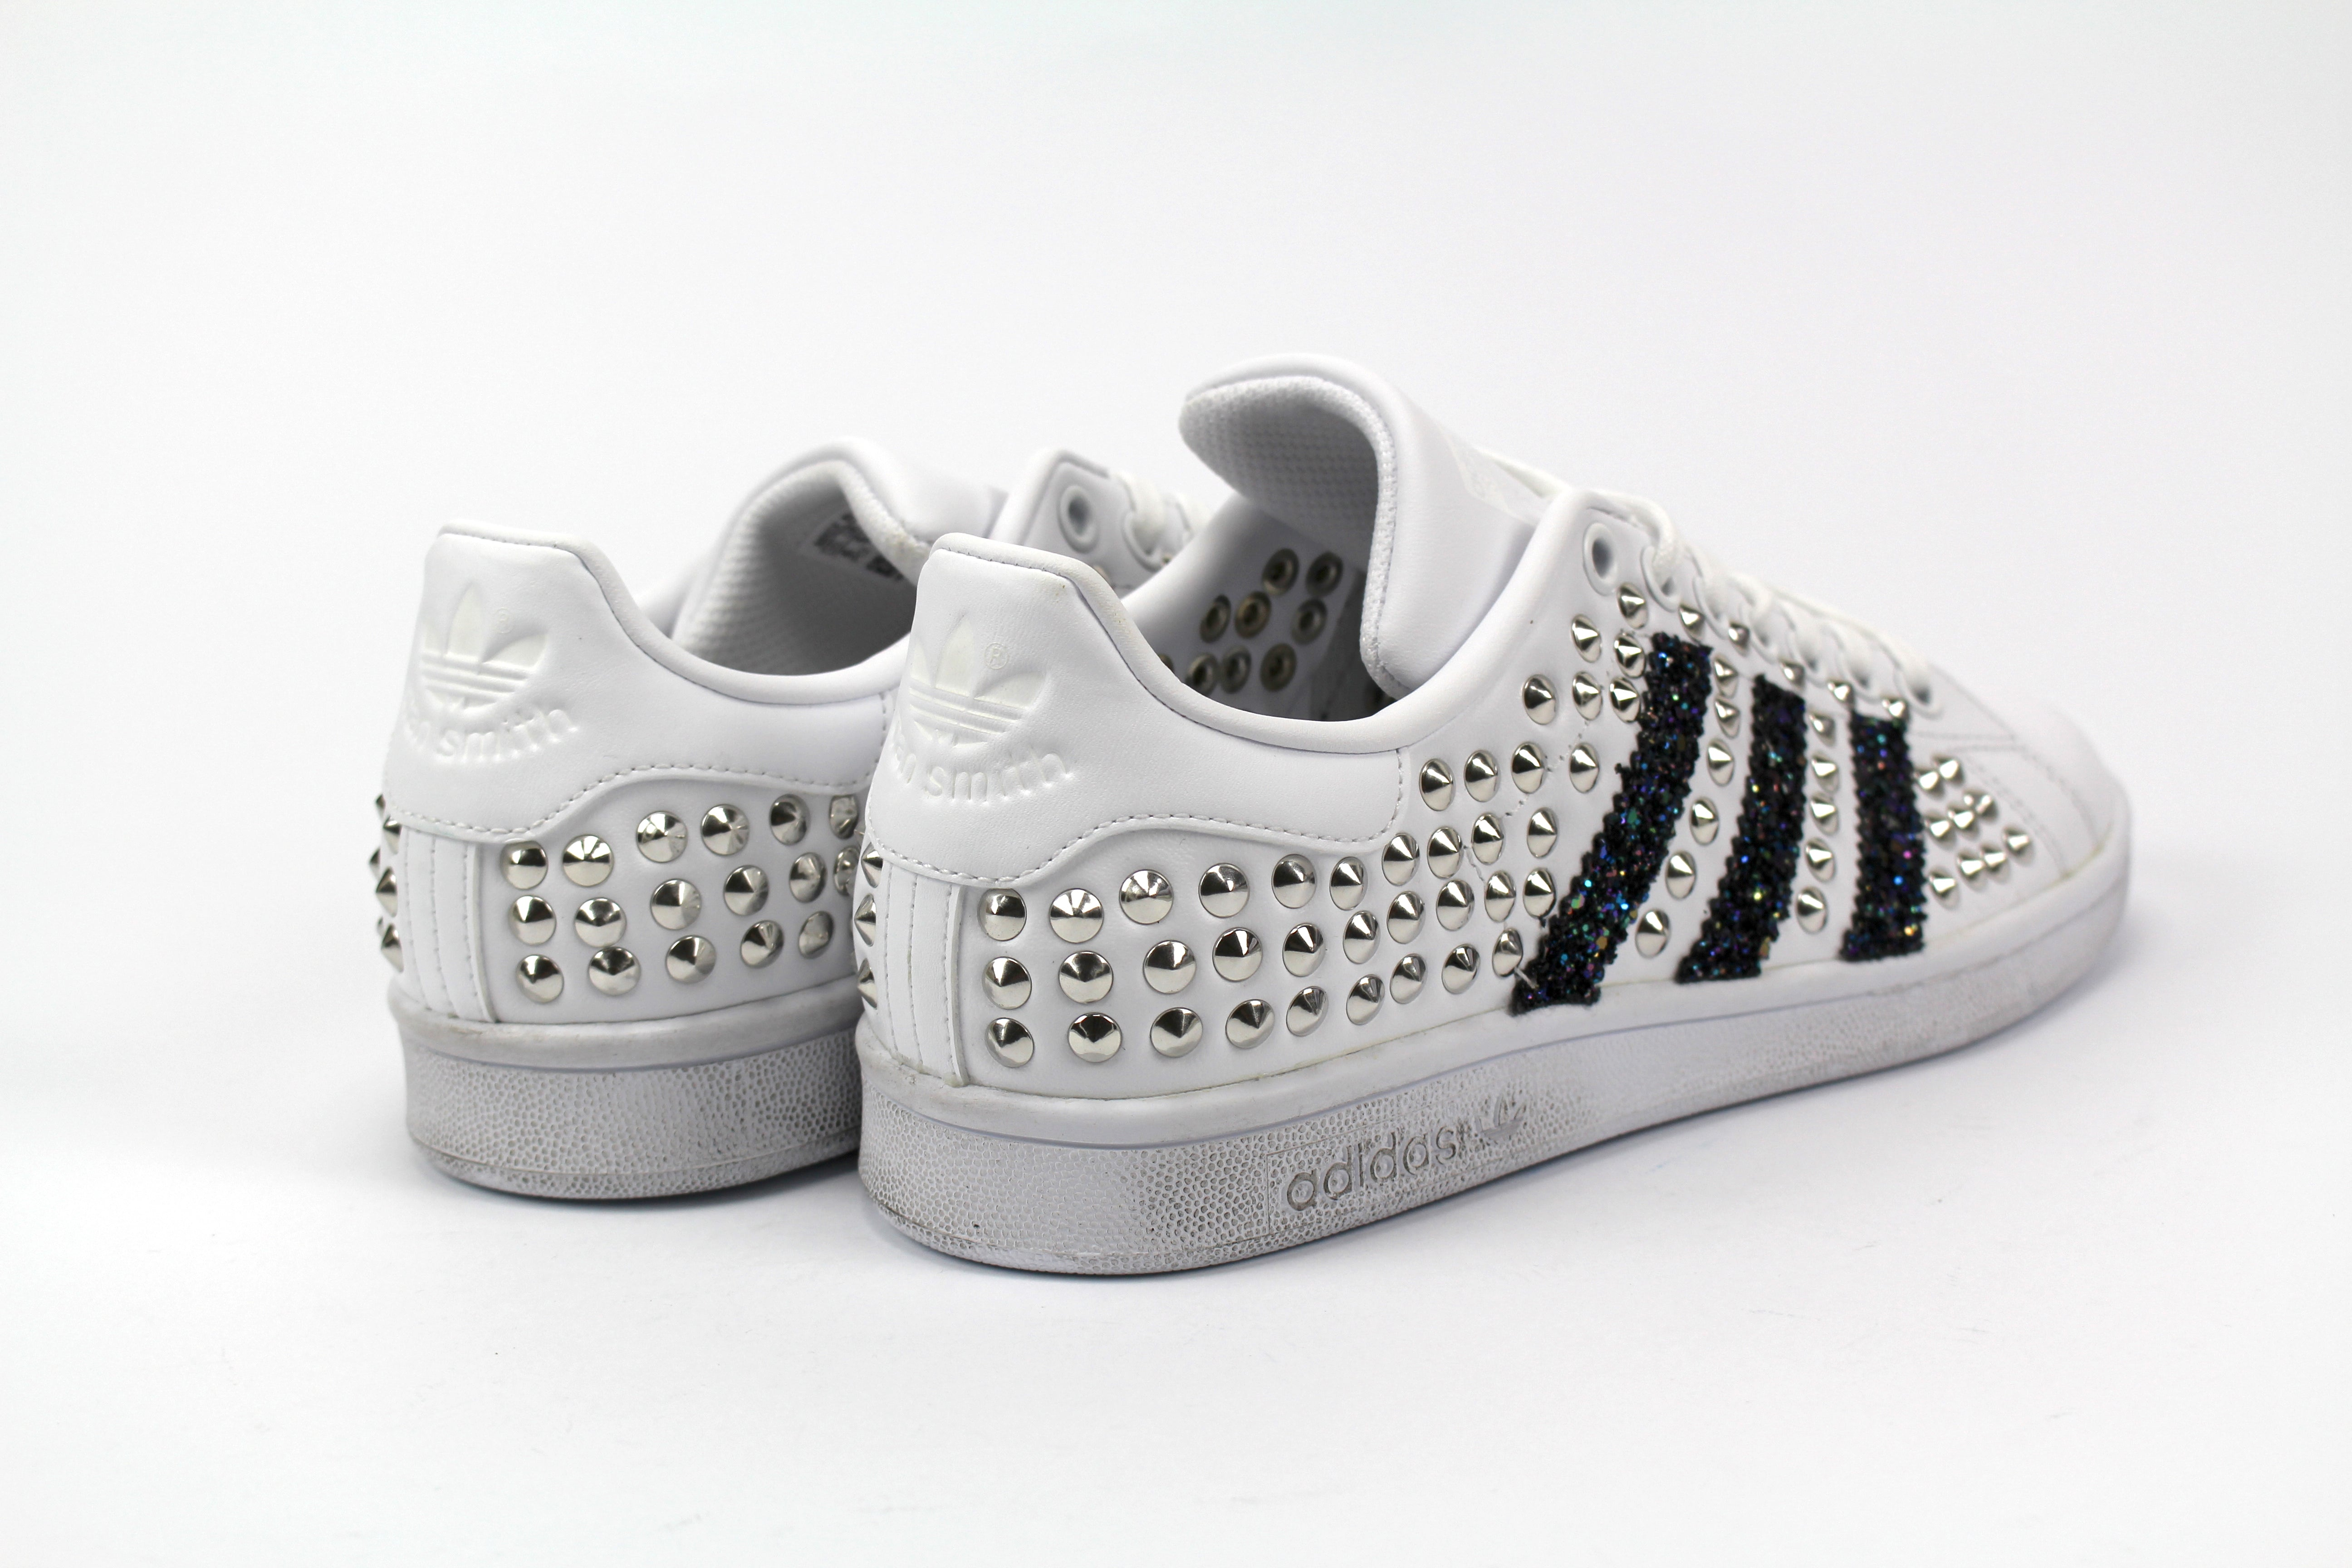 Adidas Stan Smith Personalizzate Total Borchie & Black Iris Glitter